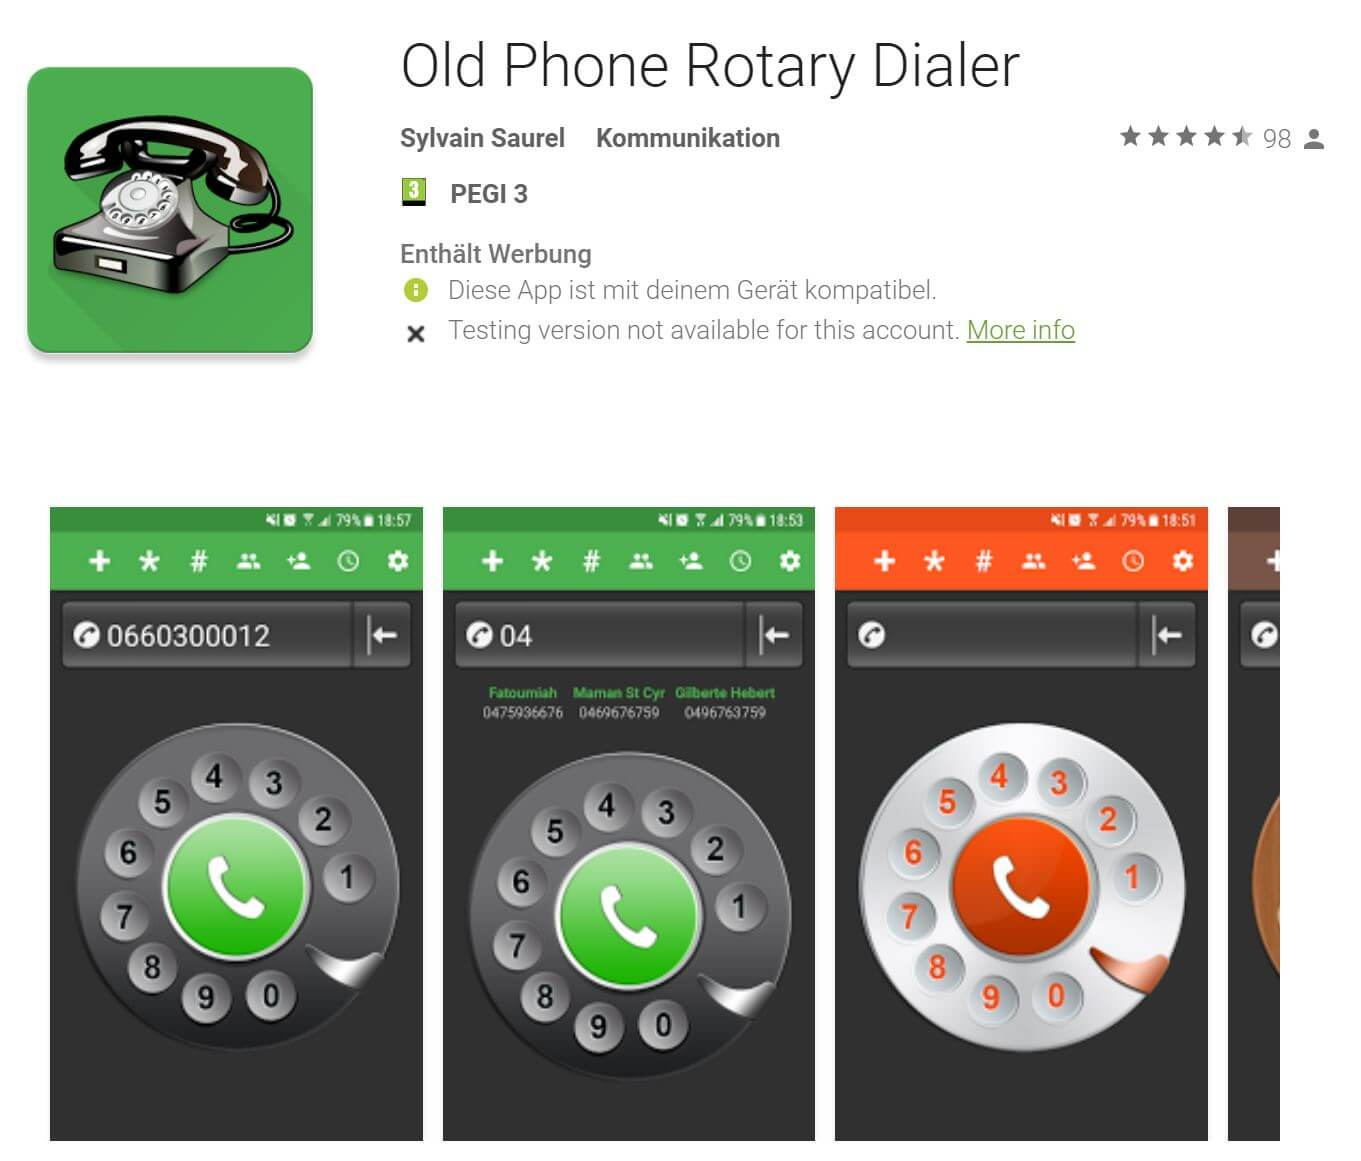 Old Phone Rotary Dialer